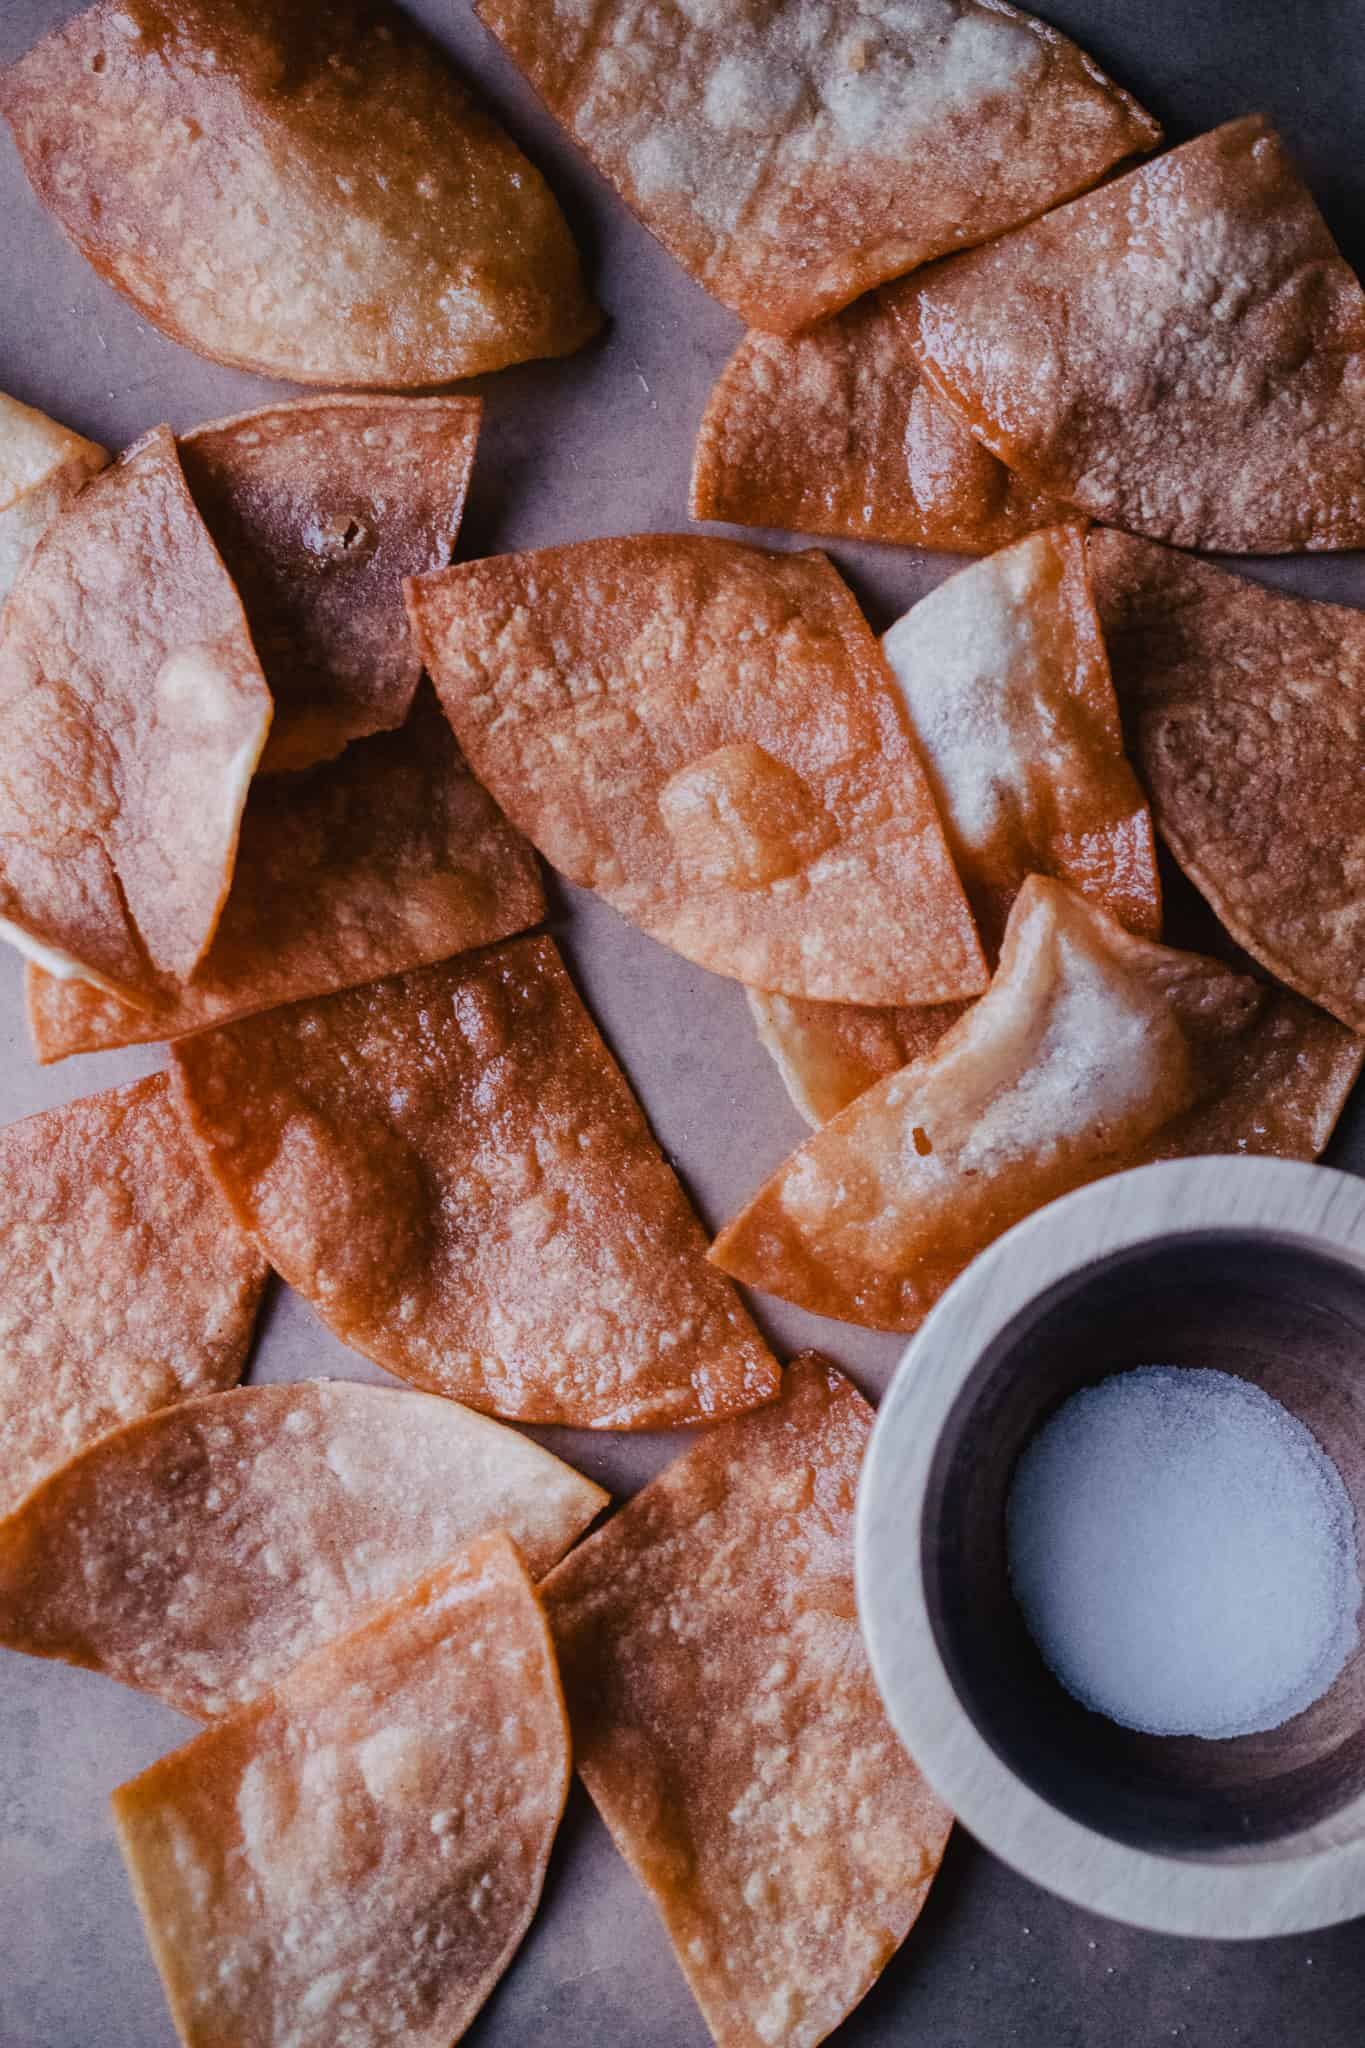 homemade restaurant style warm tortilla chips on brown parchment paper